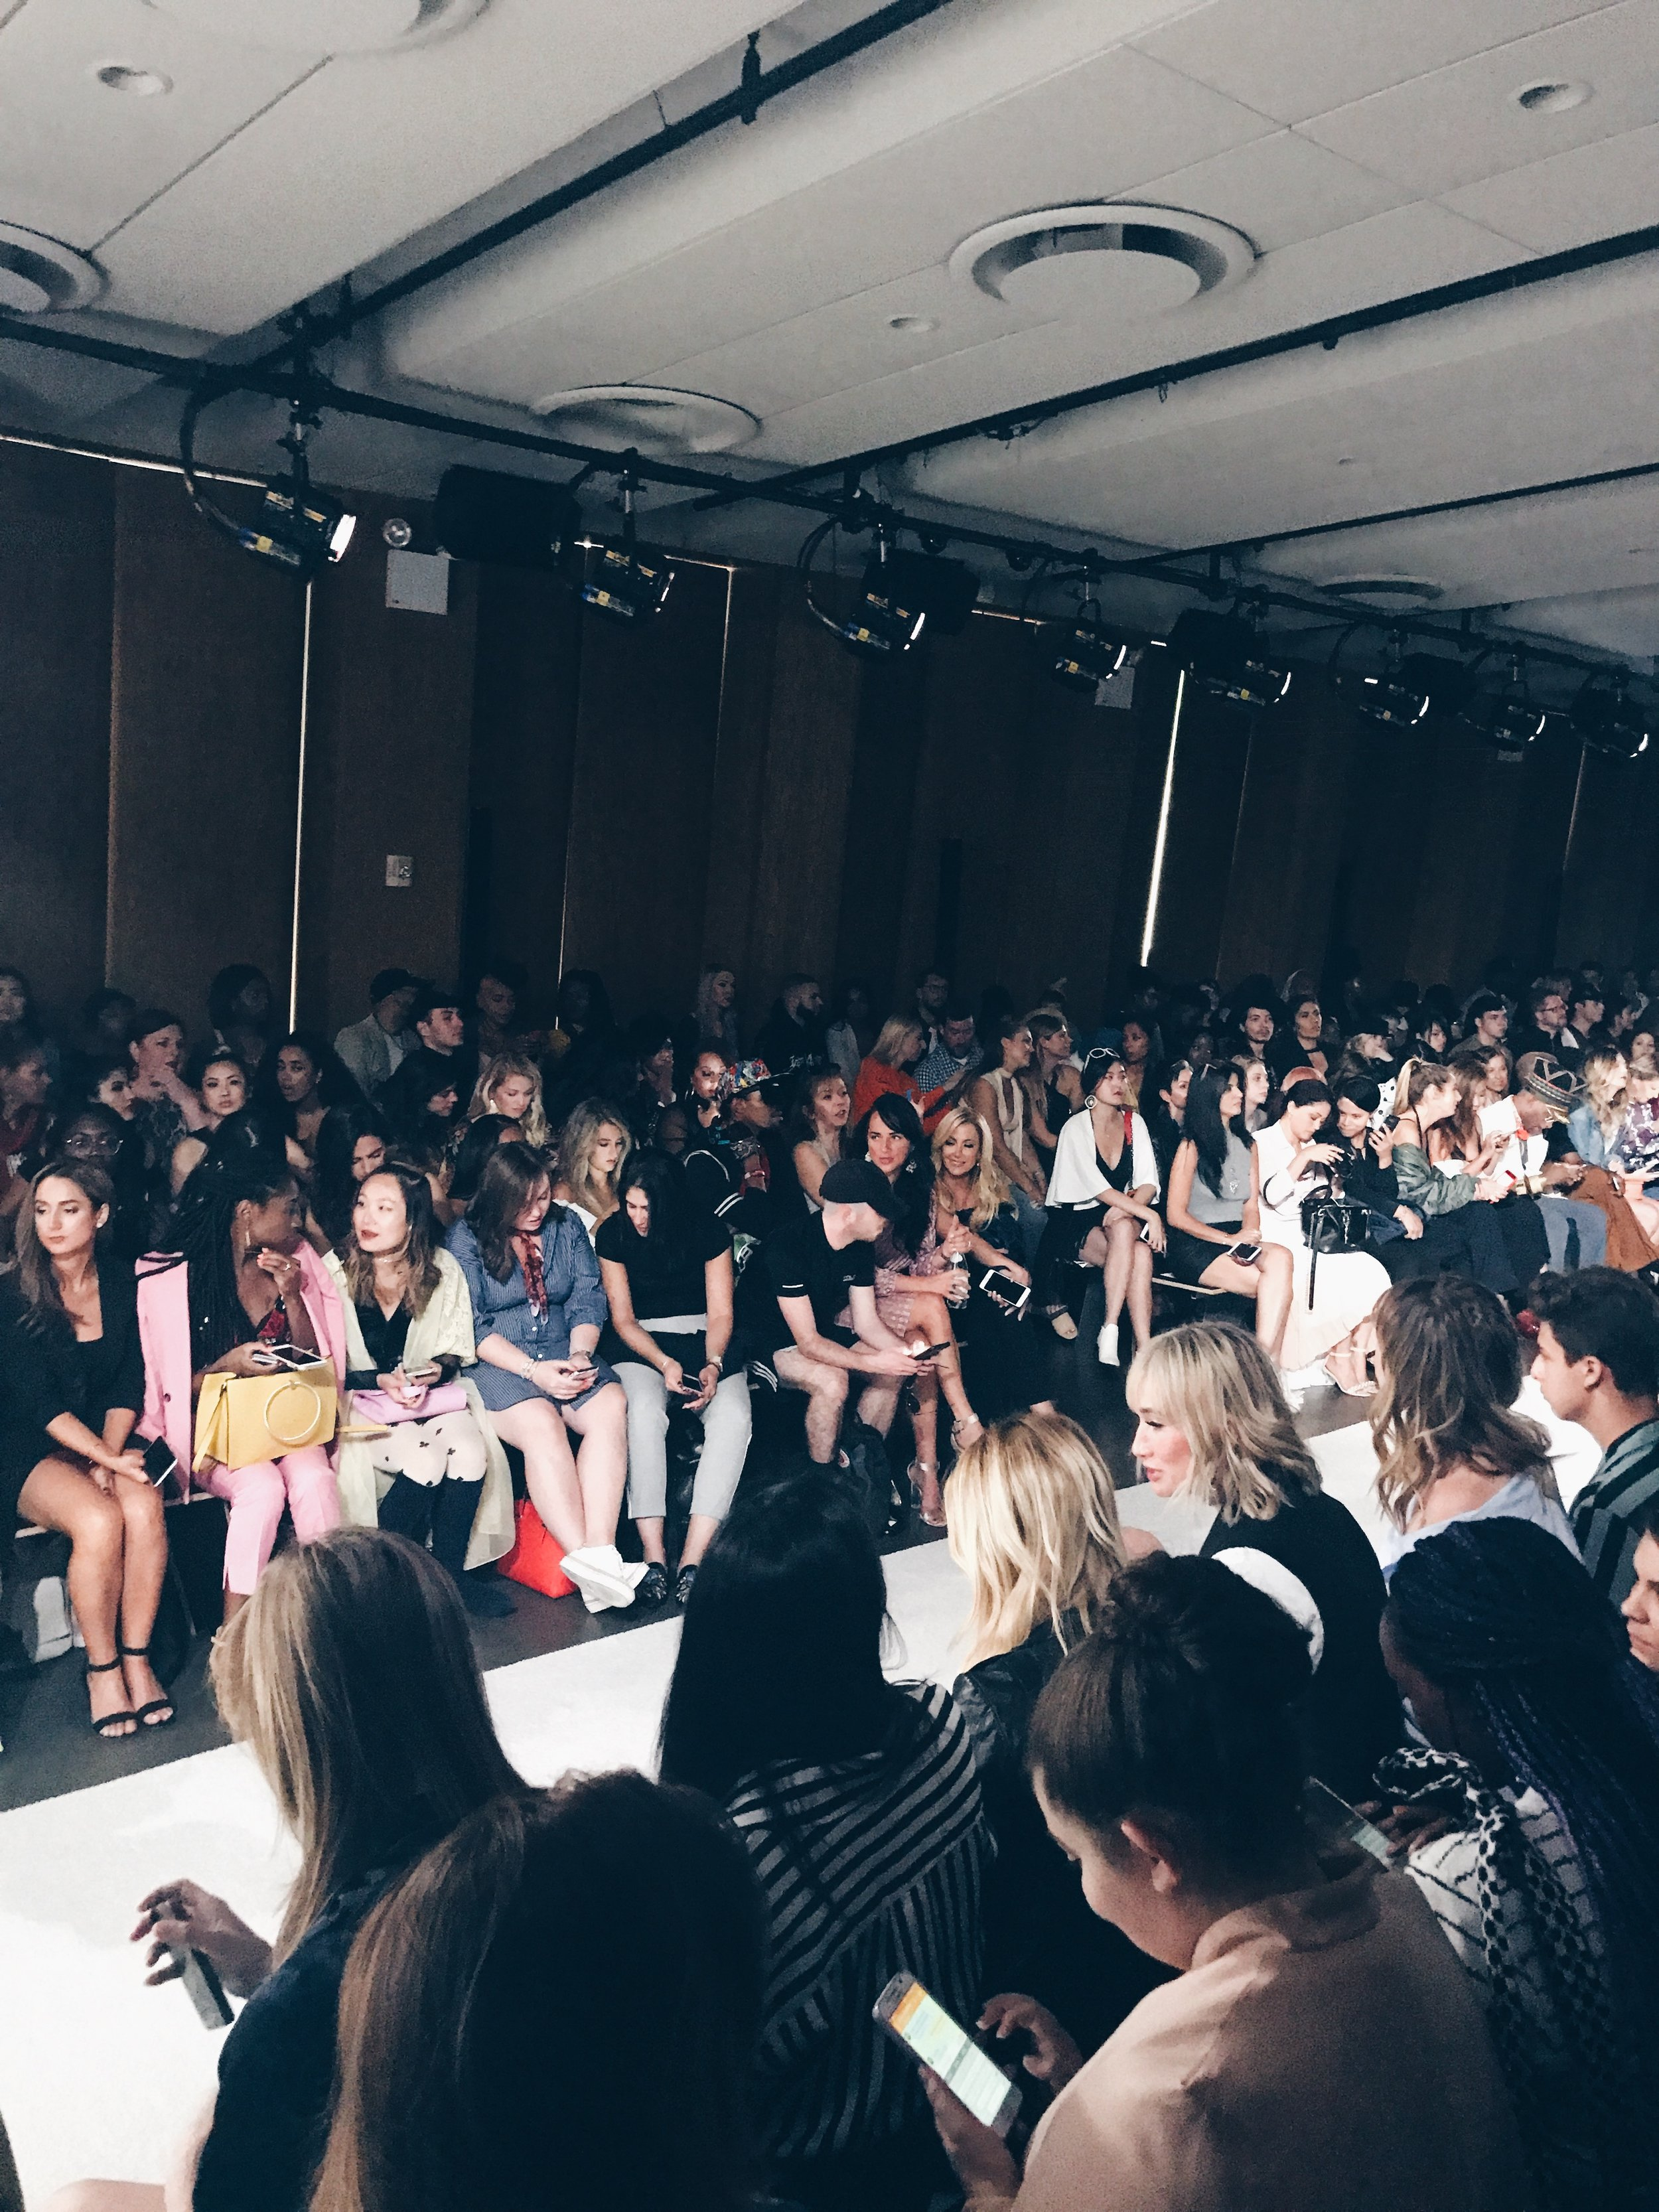 WHAT IT'S REALLY LIKE AT NYFW